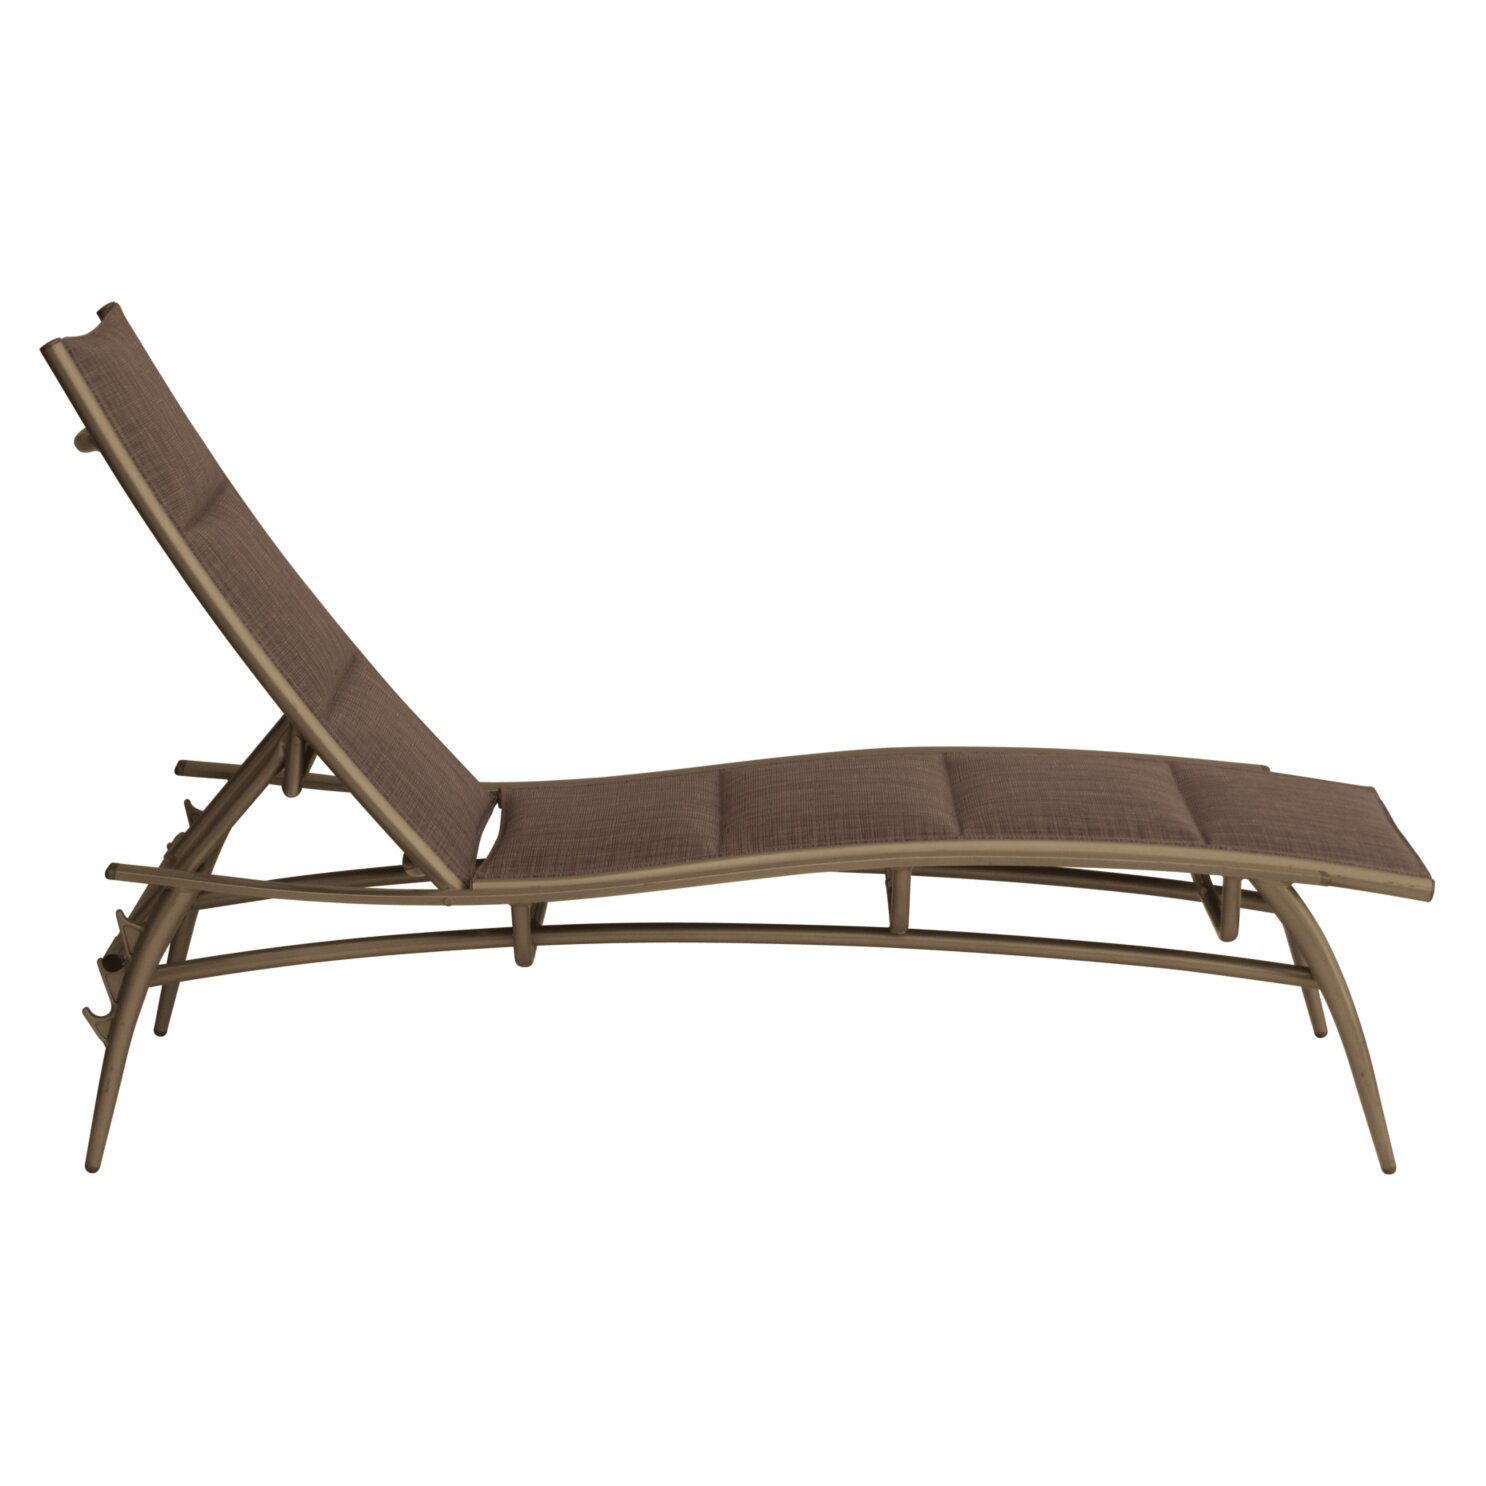 Tropitone chaise lounge chairs tropitone 440632 radiance for Promotion chaise